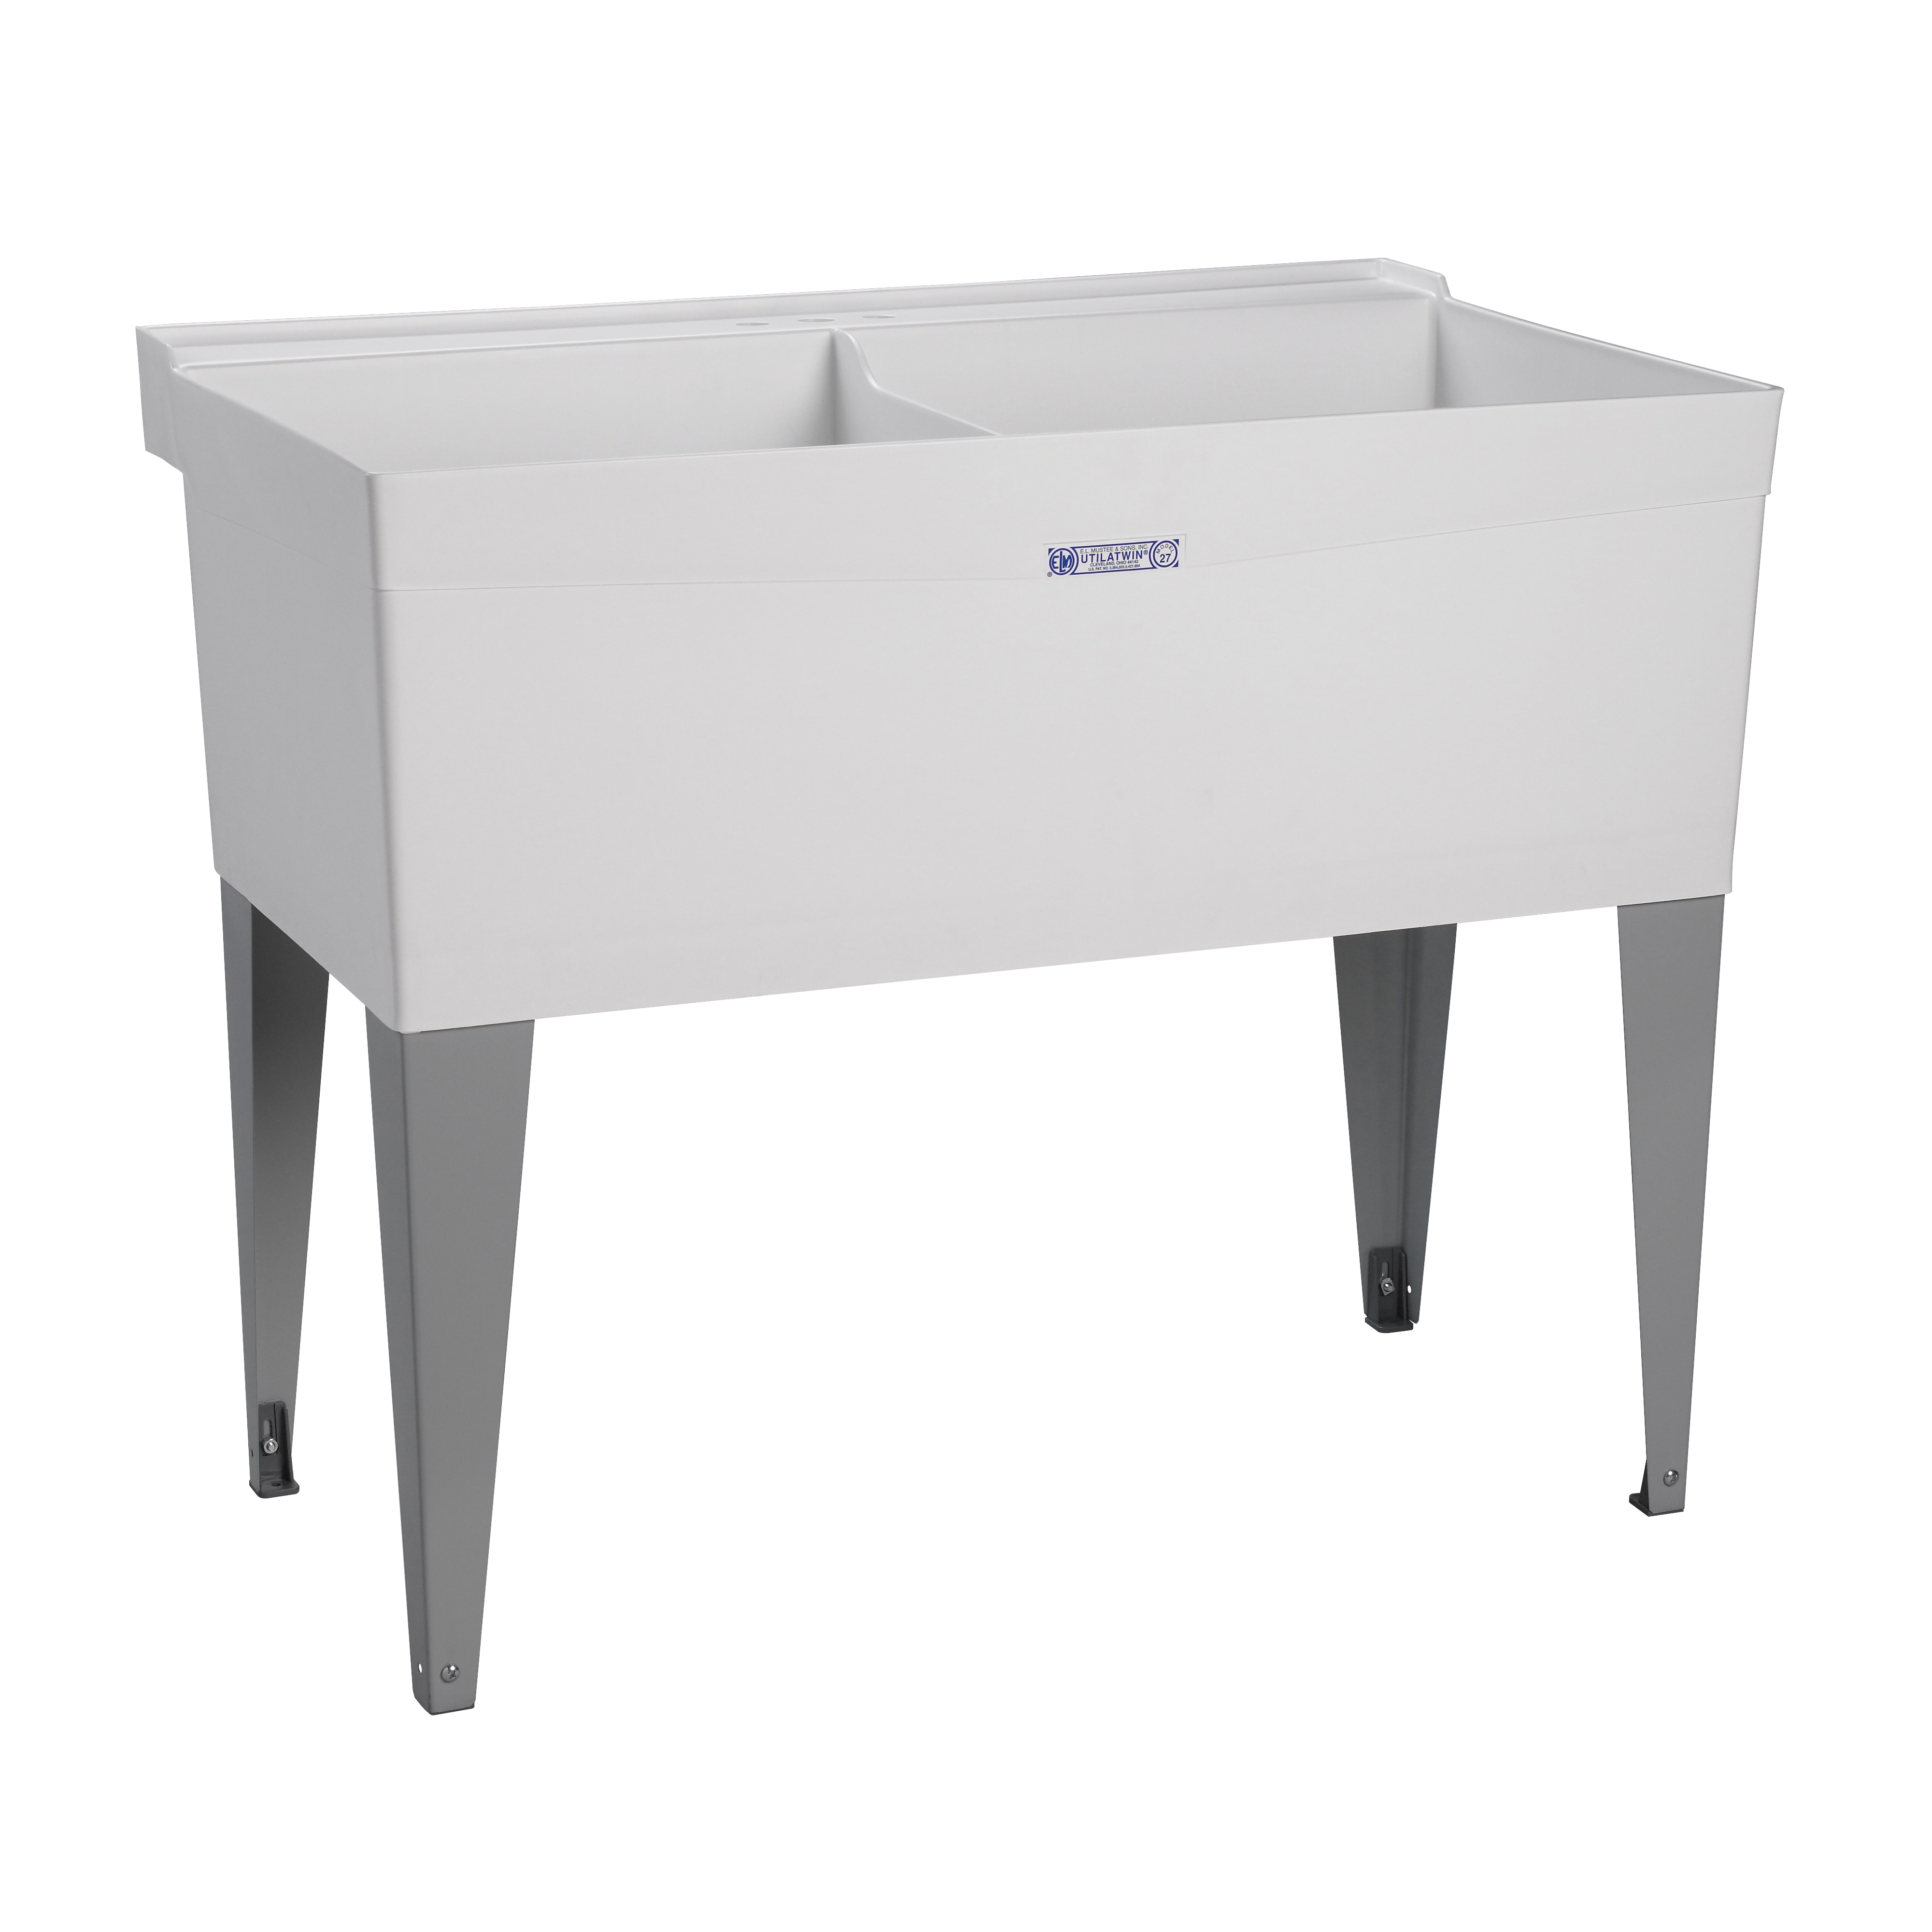 Picture of ELM UTILATUB 27F Laundry Tub, 38 gal Capacity, 2-Deck Hole, 40 in OAW, 34 in OAD, 24 in OAH, Thermoplastic